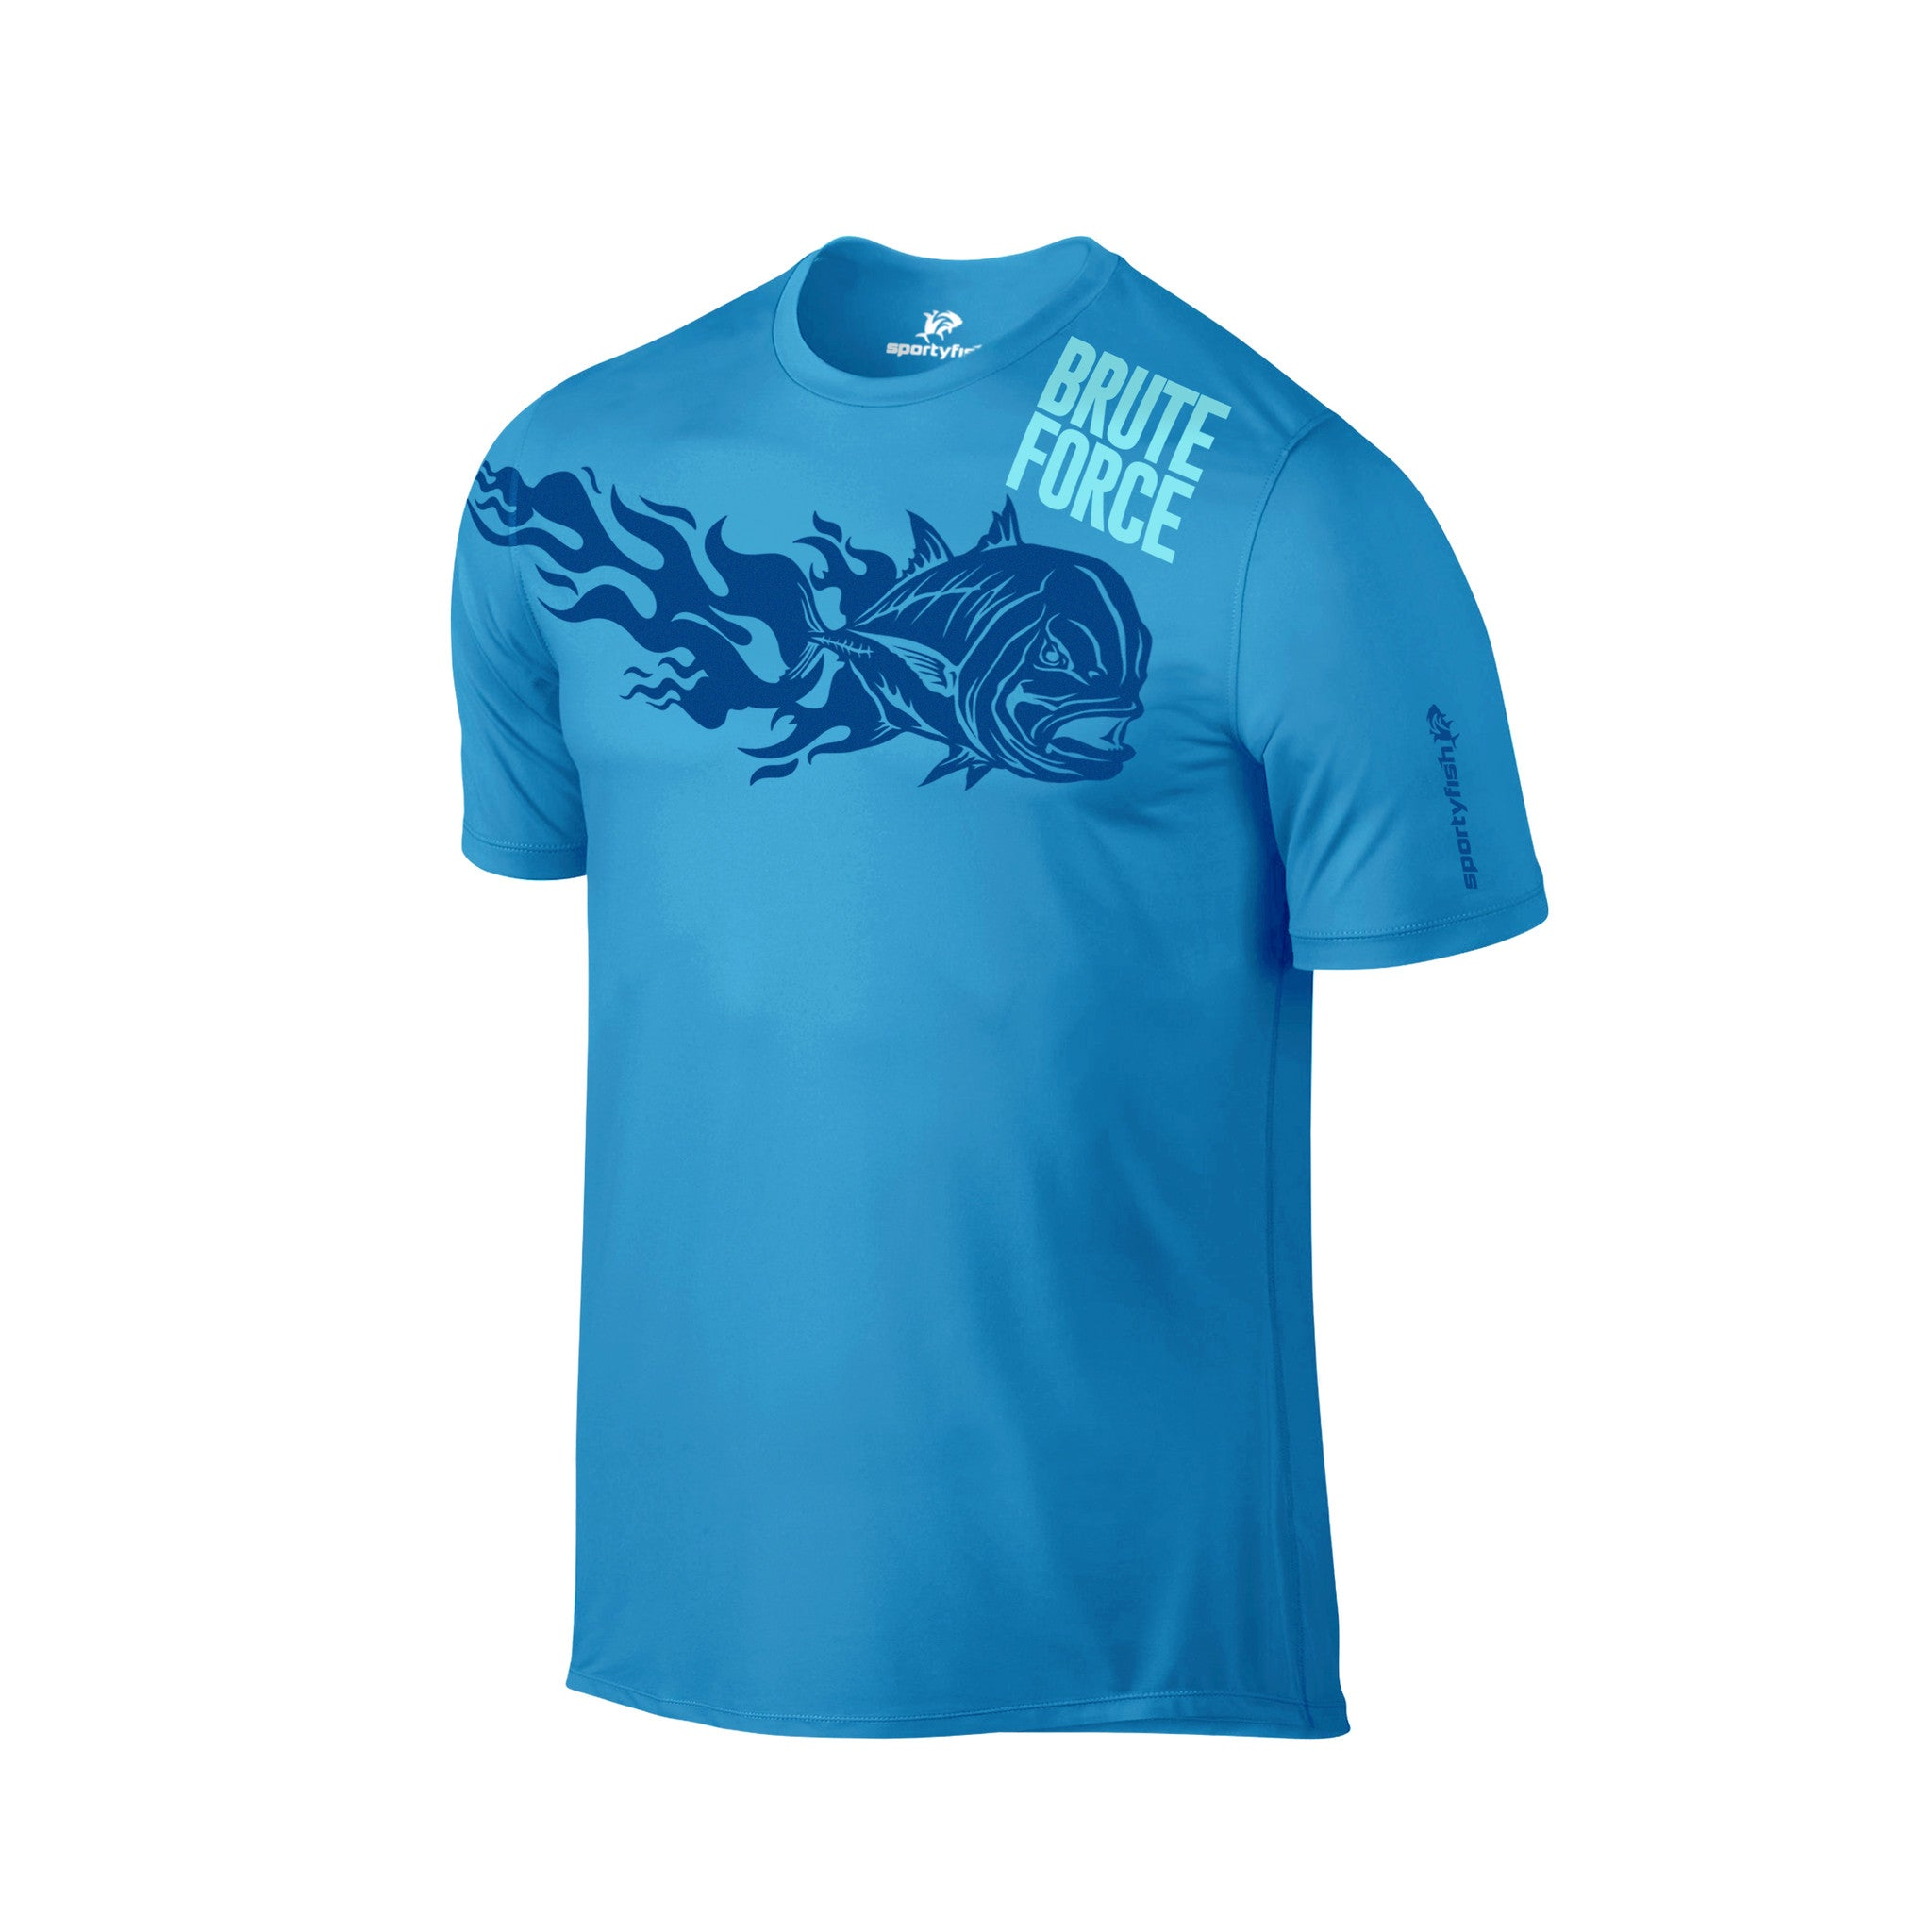 SportyFish Fury Series Turquoise T-shirt: Giant Trevally front view2